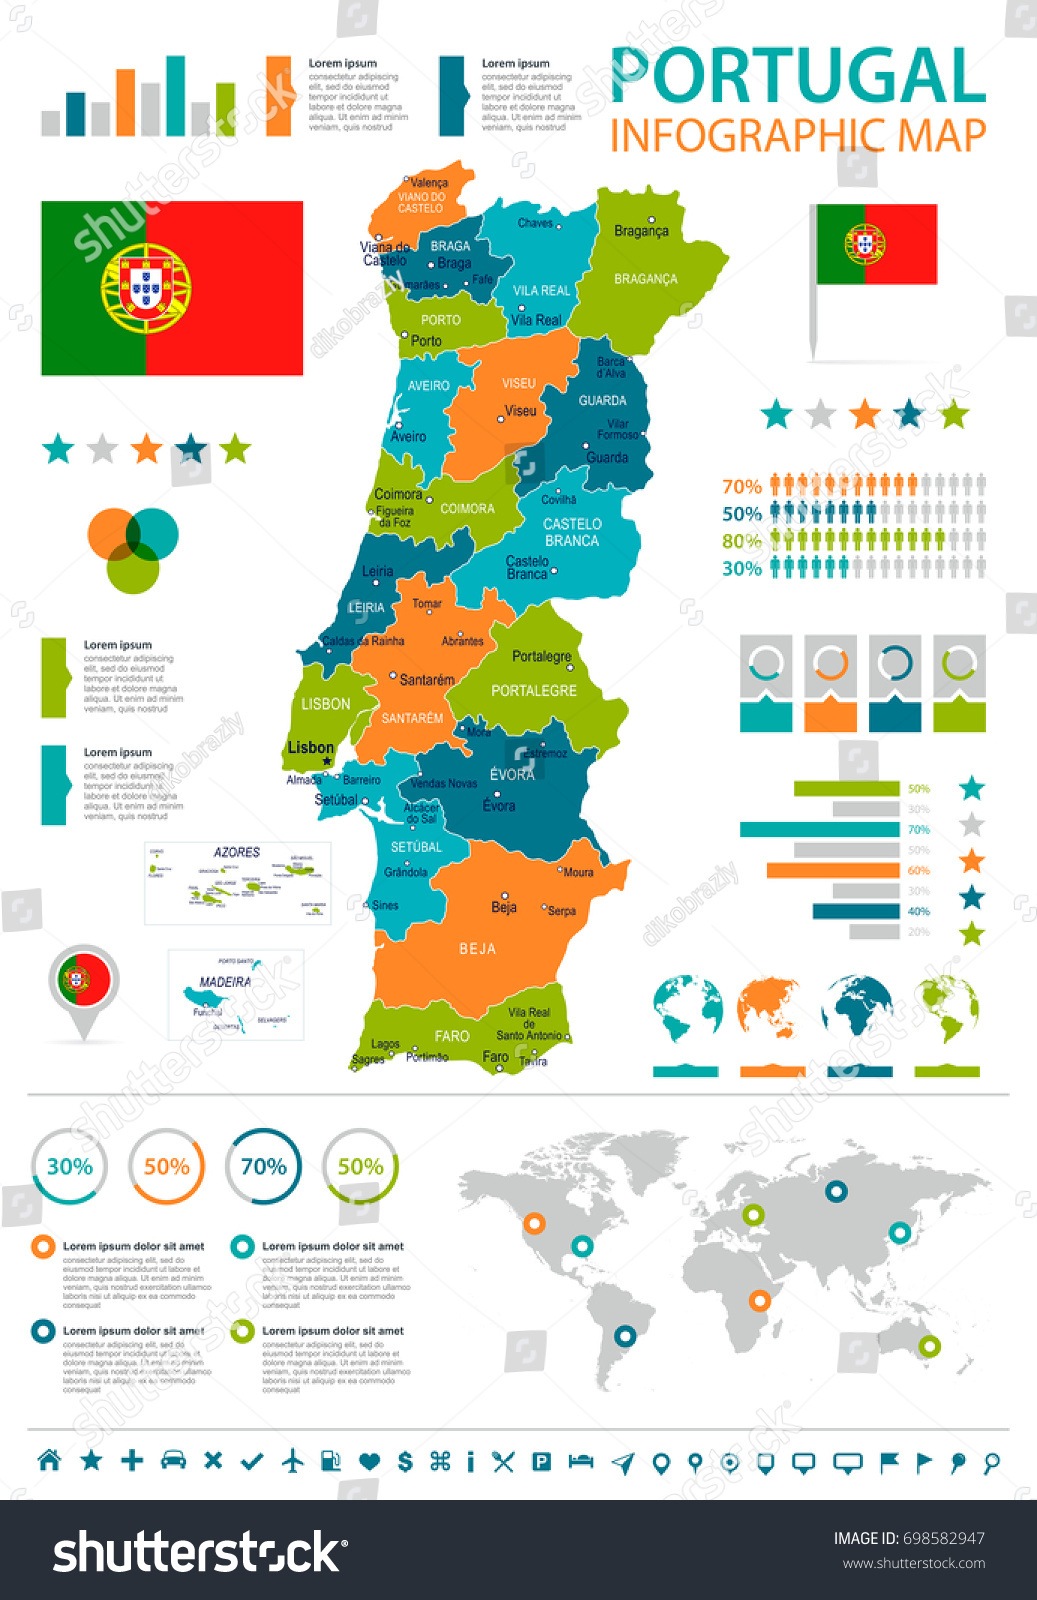 Portugal Infographic Map Flag Vector Illustration Stock Vector - Portugal map braga